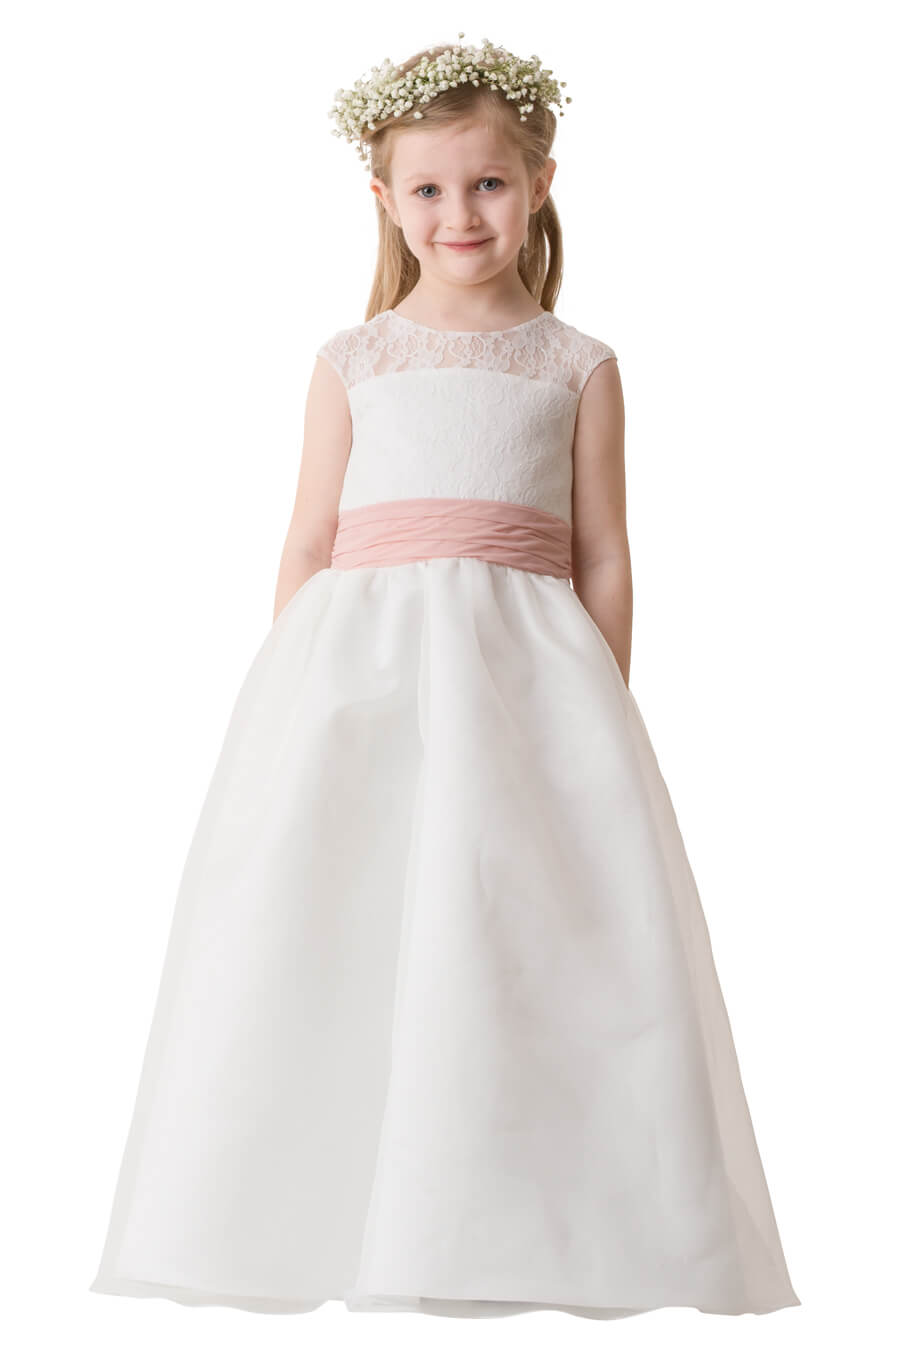 cd7029e7e13c Jewel neckline. Lace bodice with illusion yoke and cap sleeves. Ruched  waistband, detachable bow, and tulle skirt with center back zipper.